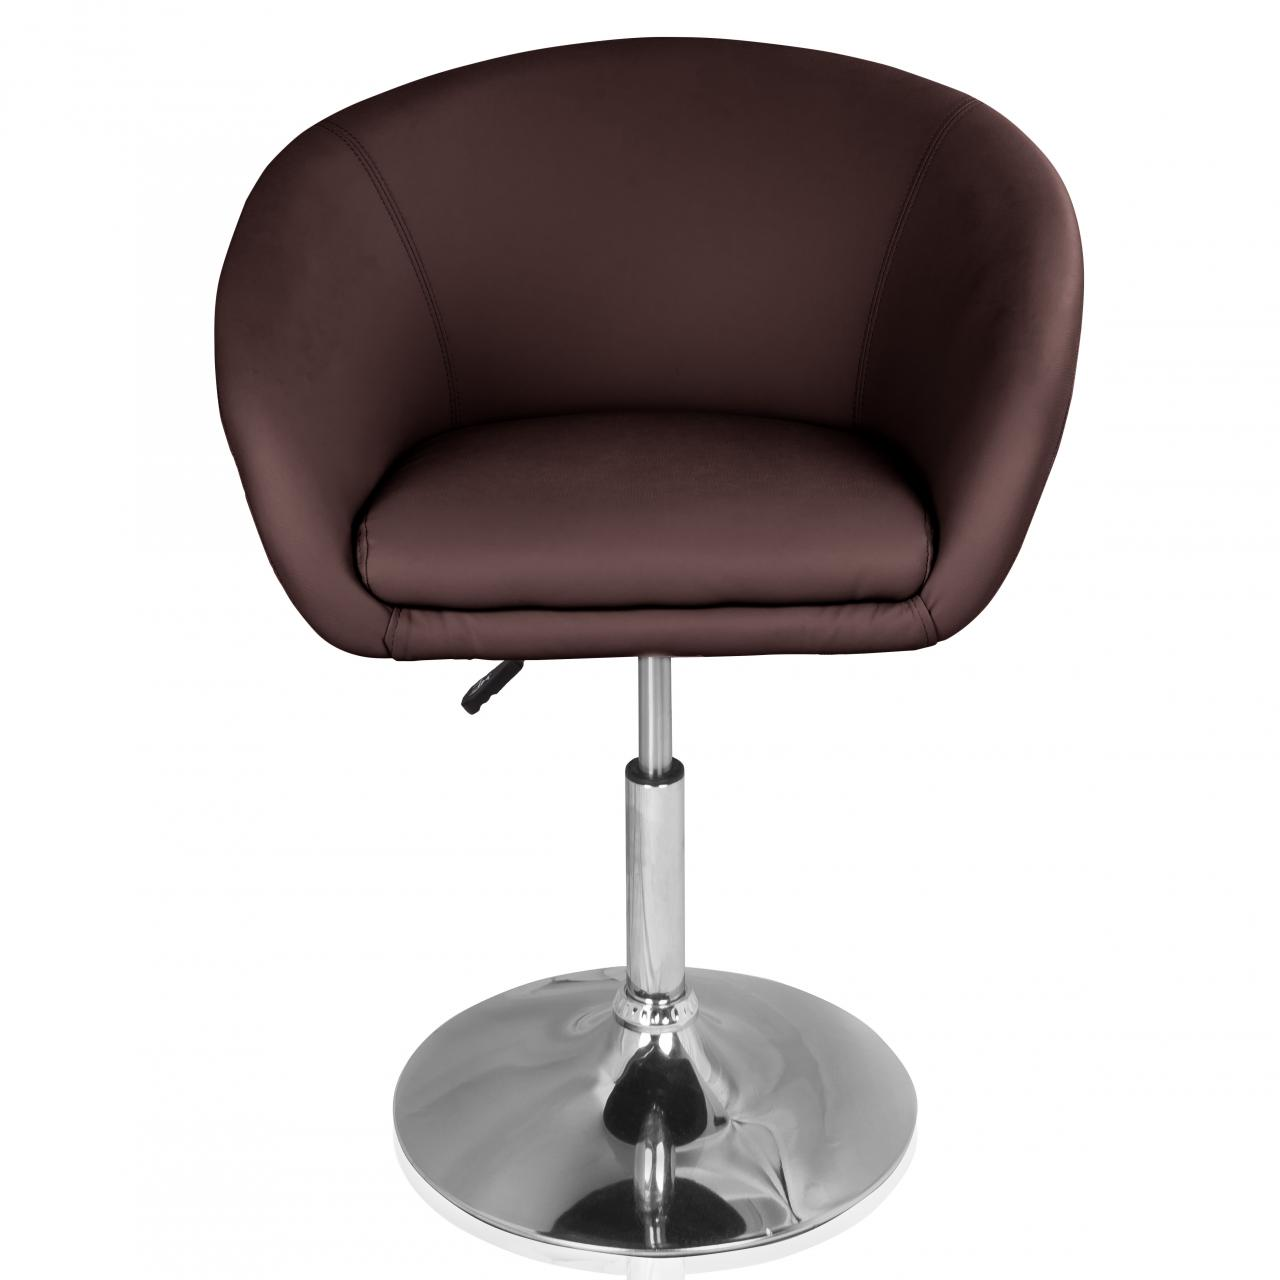 Cocktailsessel Leder Braun Cocktailsessel Loungesessel Clubsessel Barhocker Bar Disco